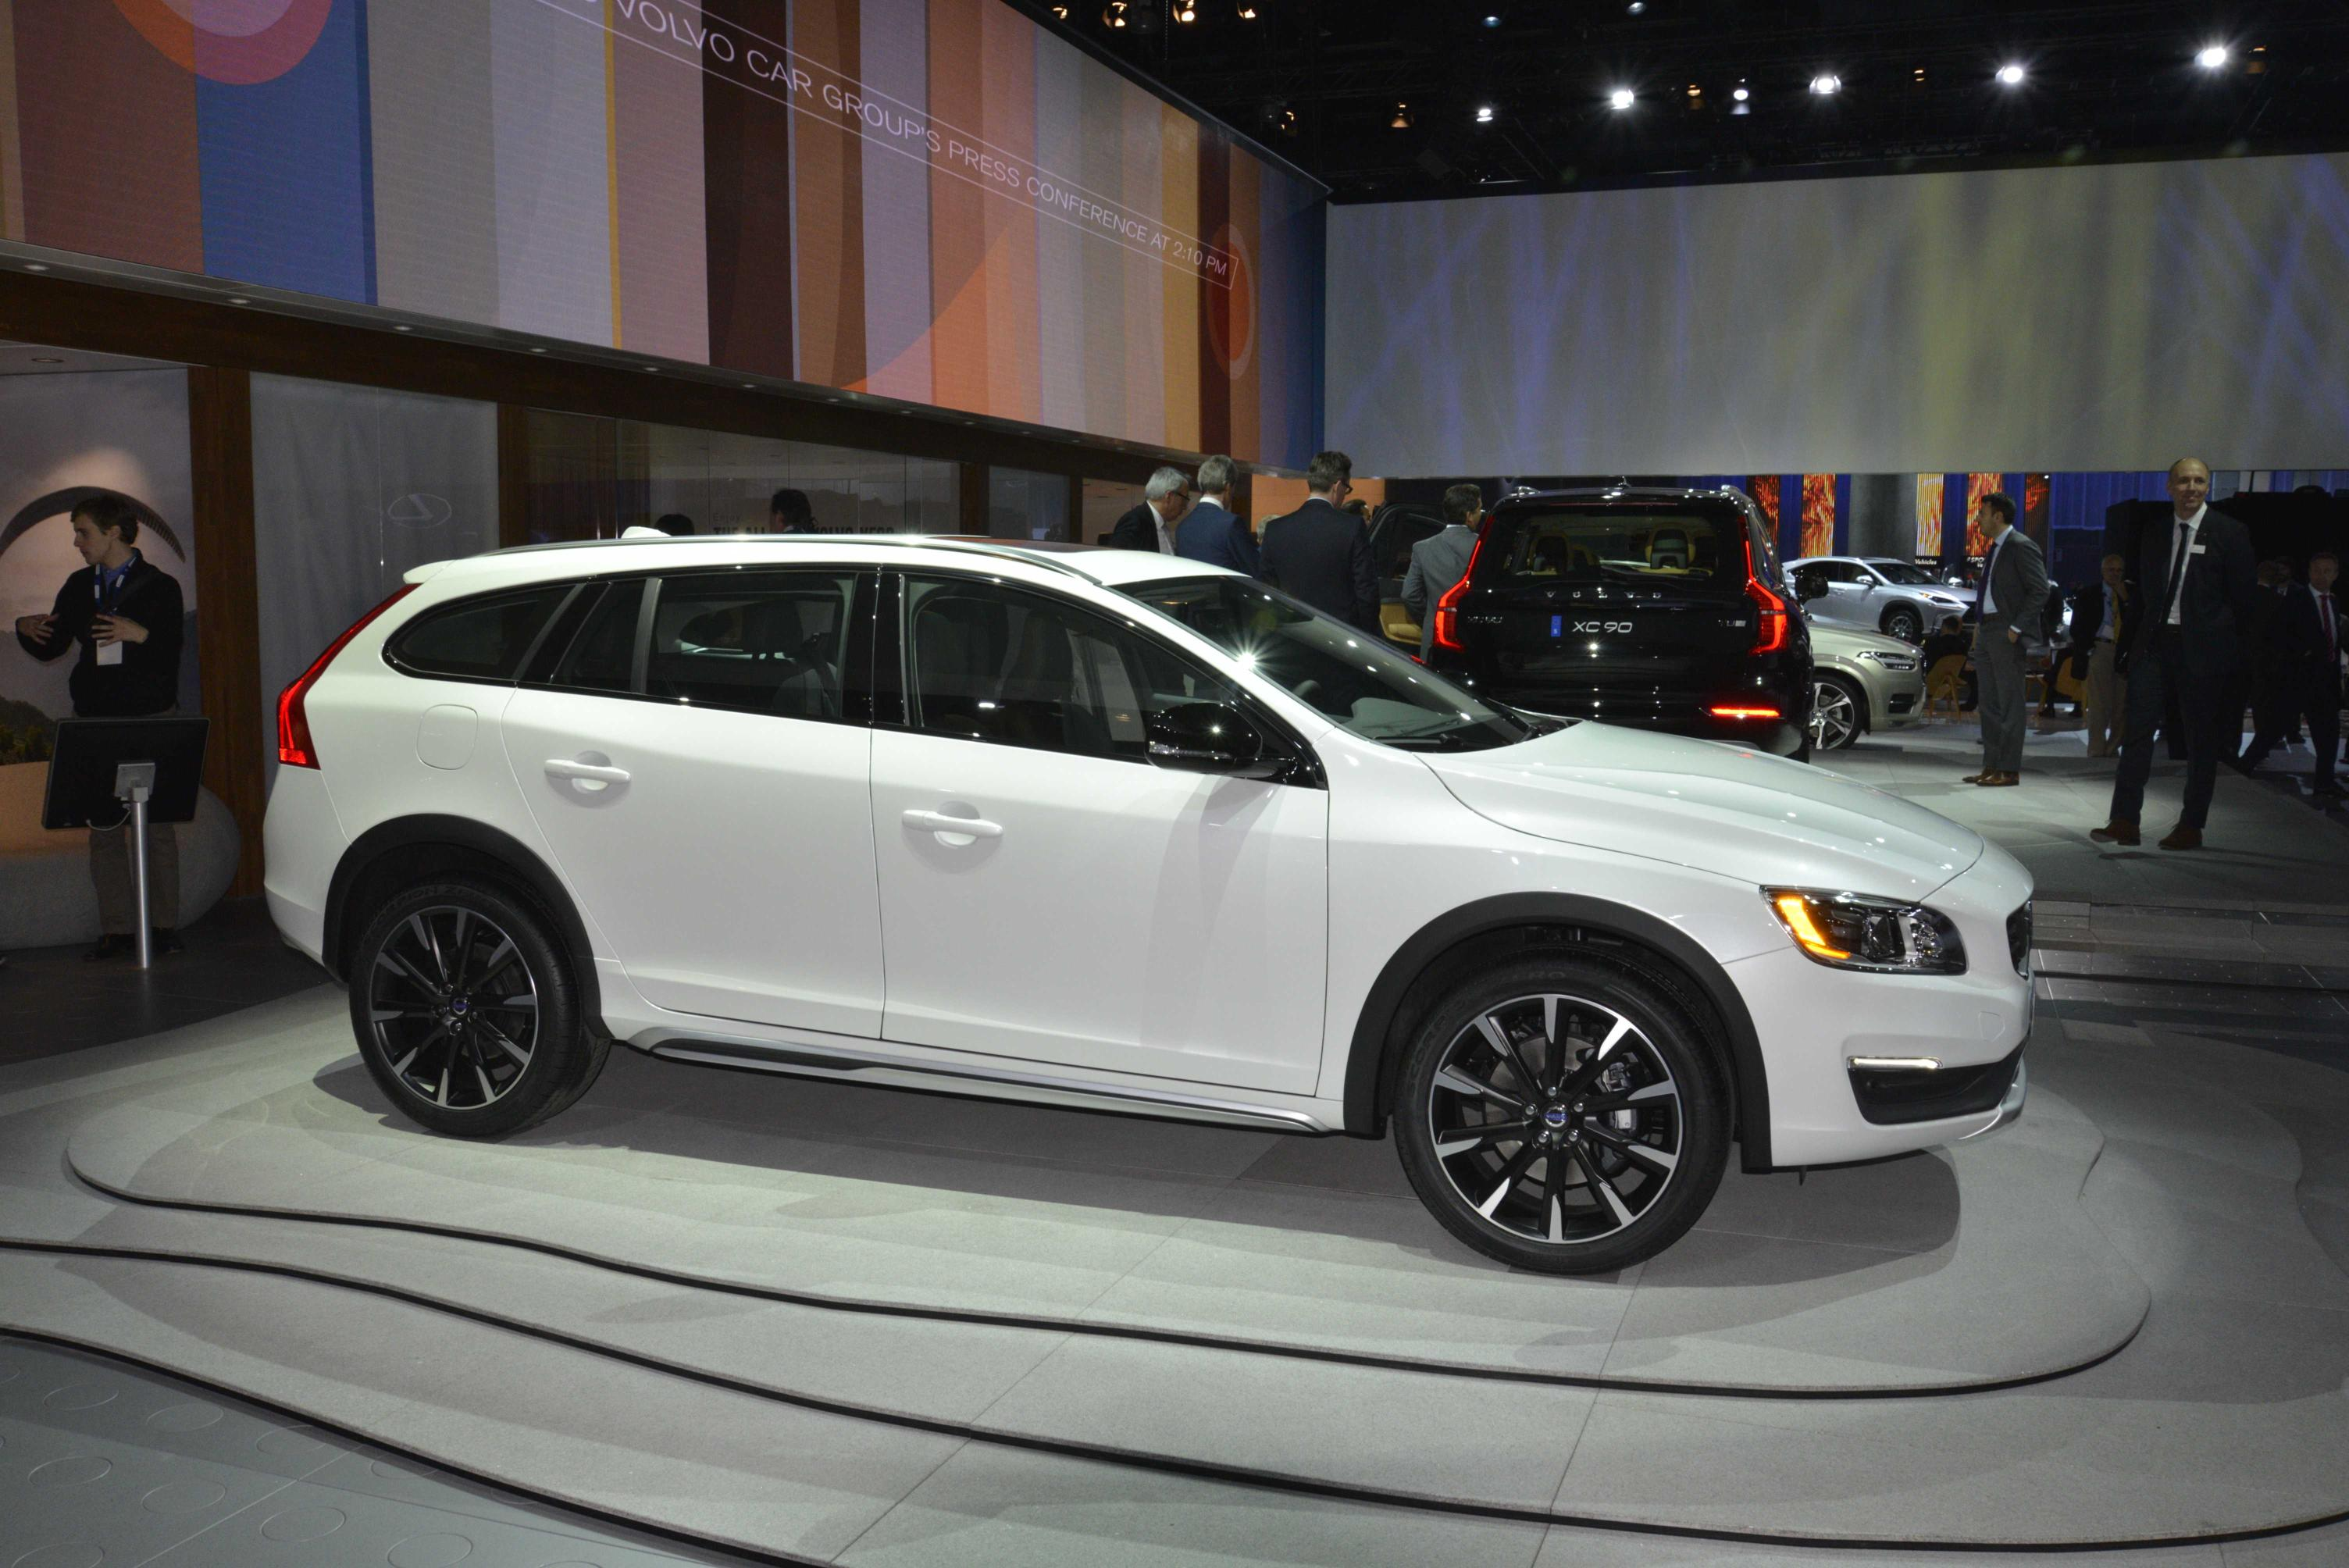 volvo v60 cross country makes world debut at 2014 la show. Black Bedroom Furniture Sets. Home Design Ideas